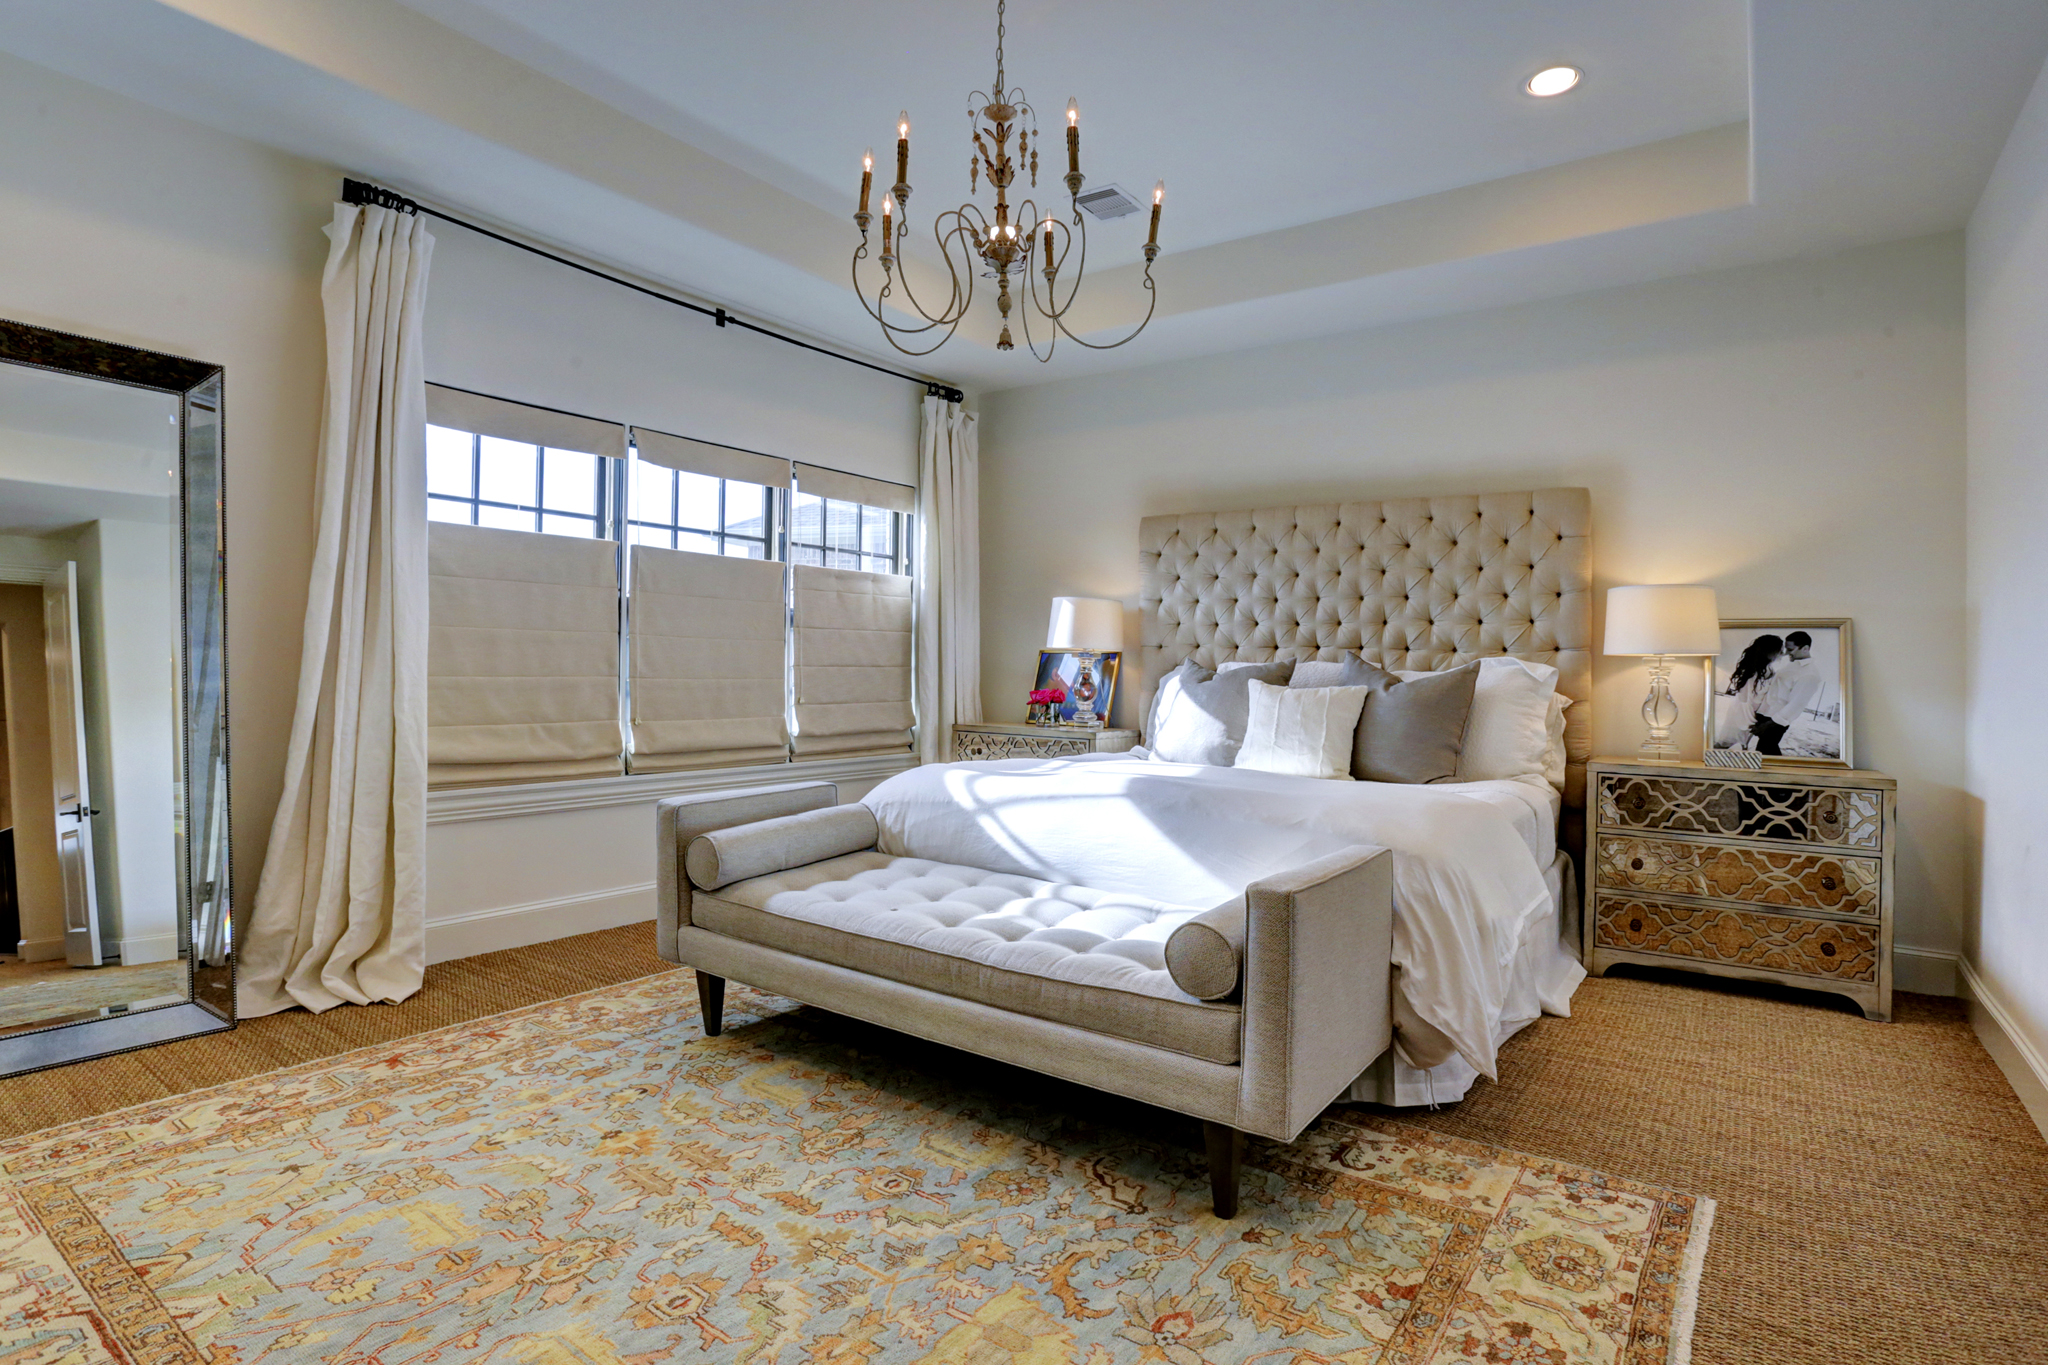 Transitional luxury home bedroom